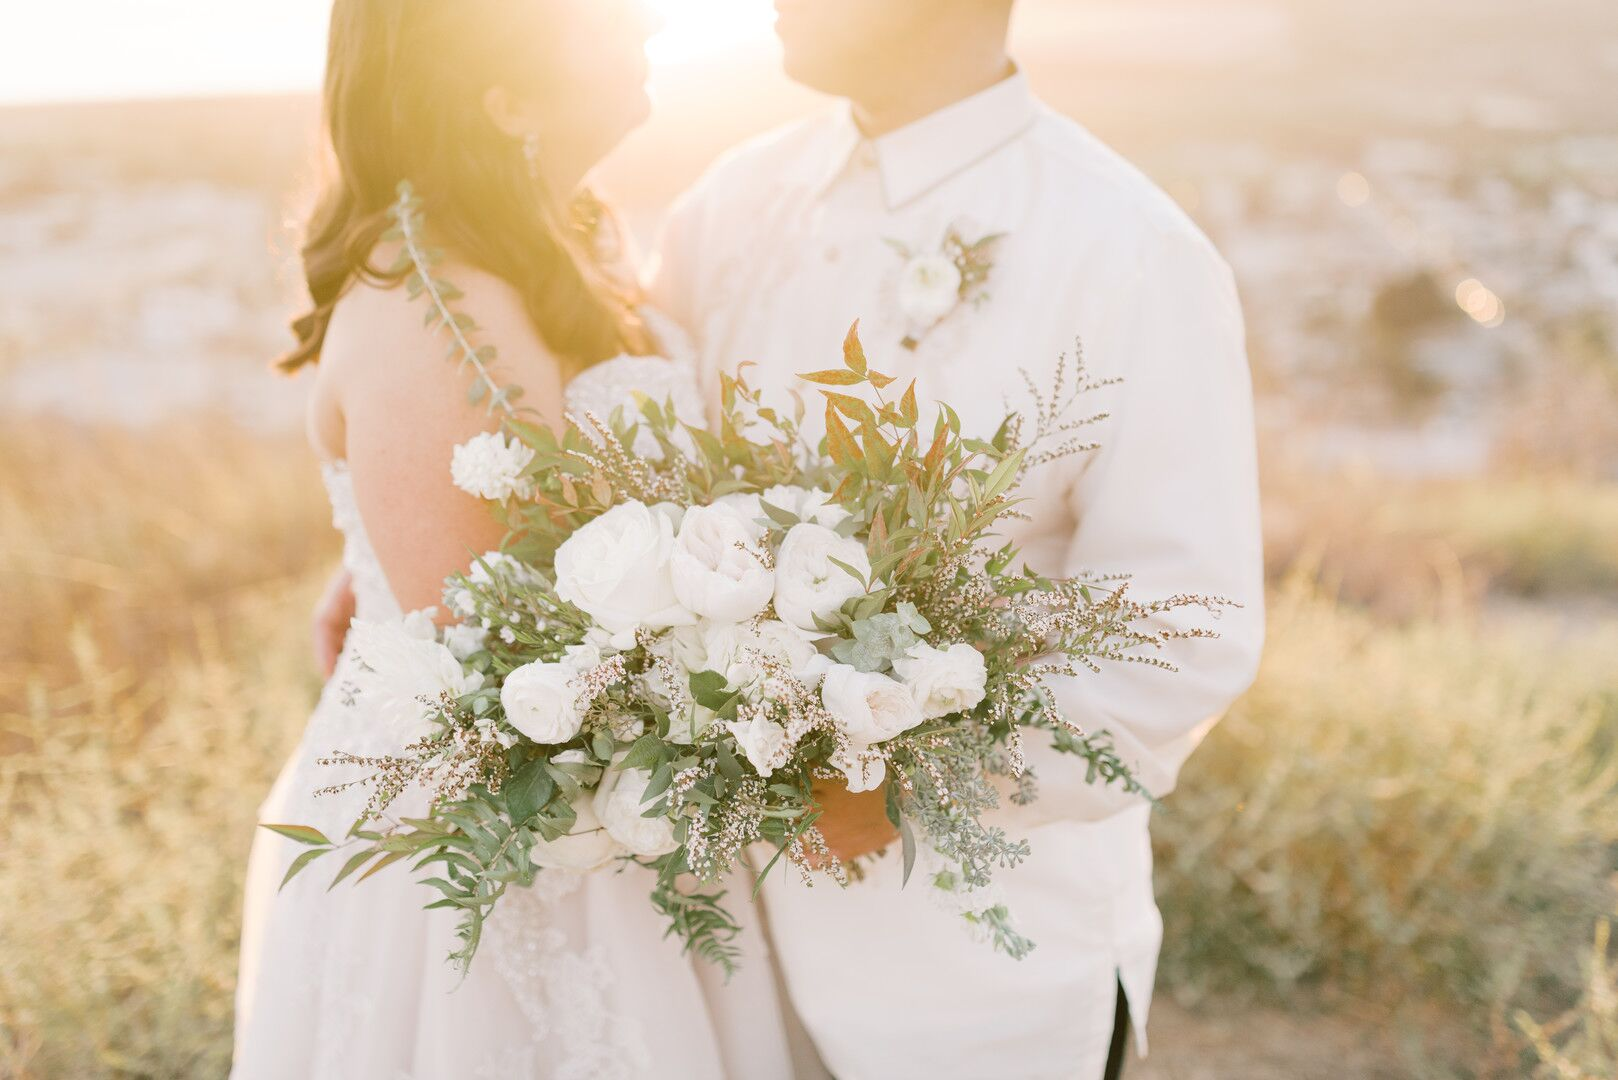 wwww.santabarbawedding.com |Planner: Vintage Heart Events | Ceremony Venue: Serra Cross Park | Photographer: Haley Richter Photography |  Bride and Groom with Bouquet